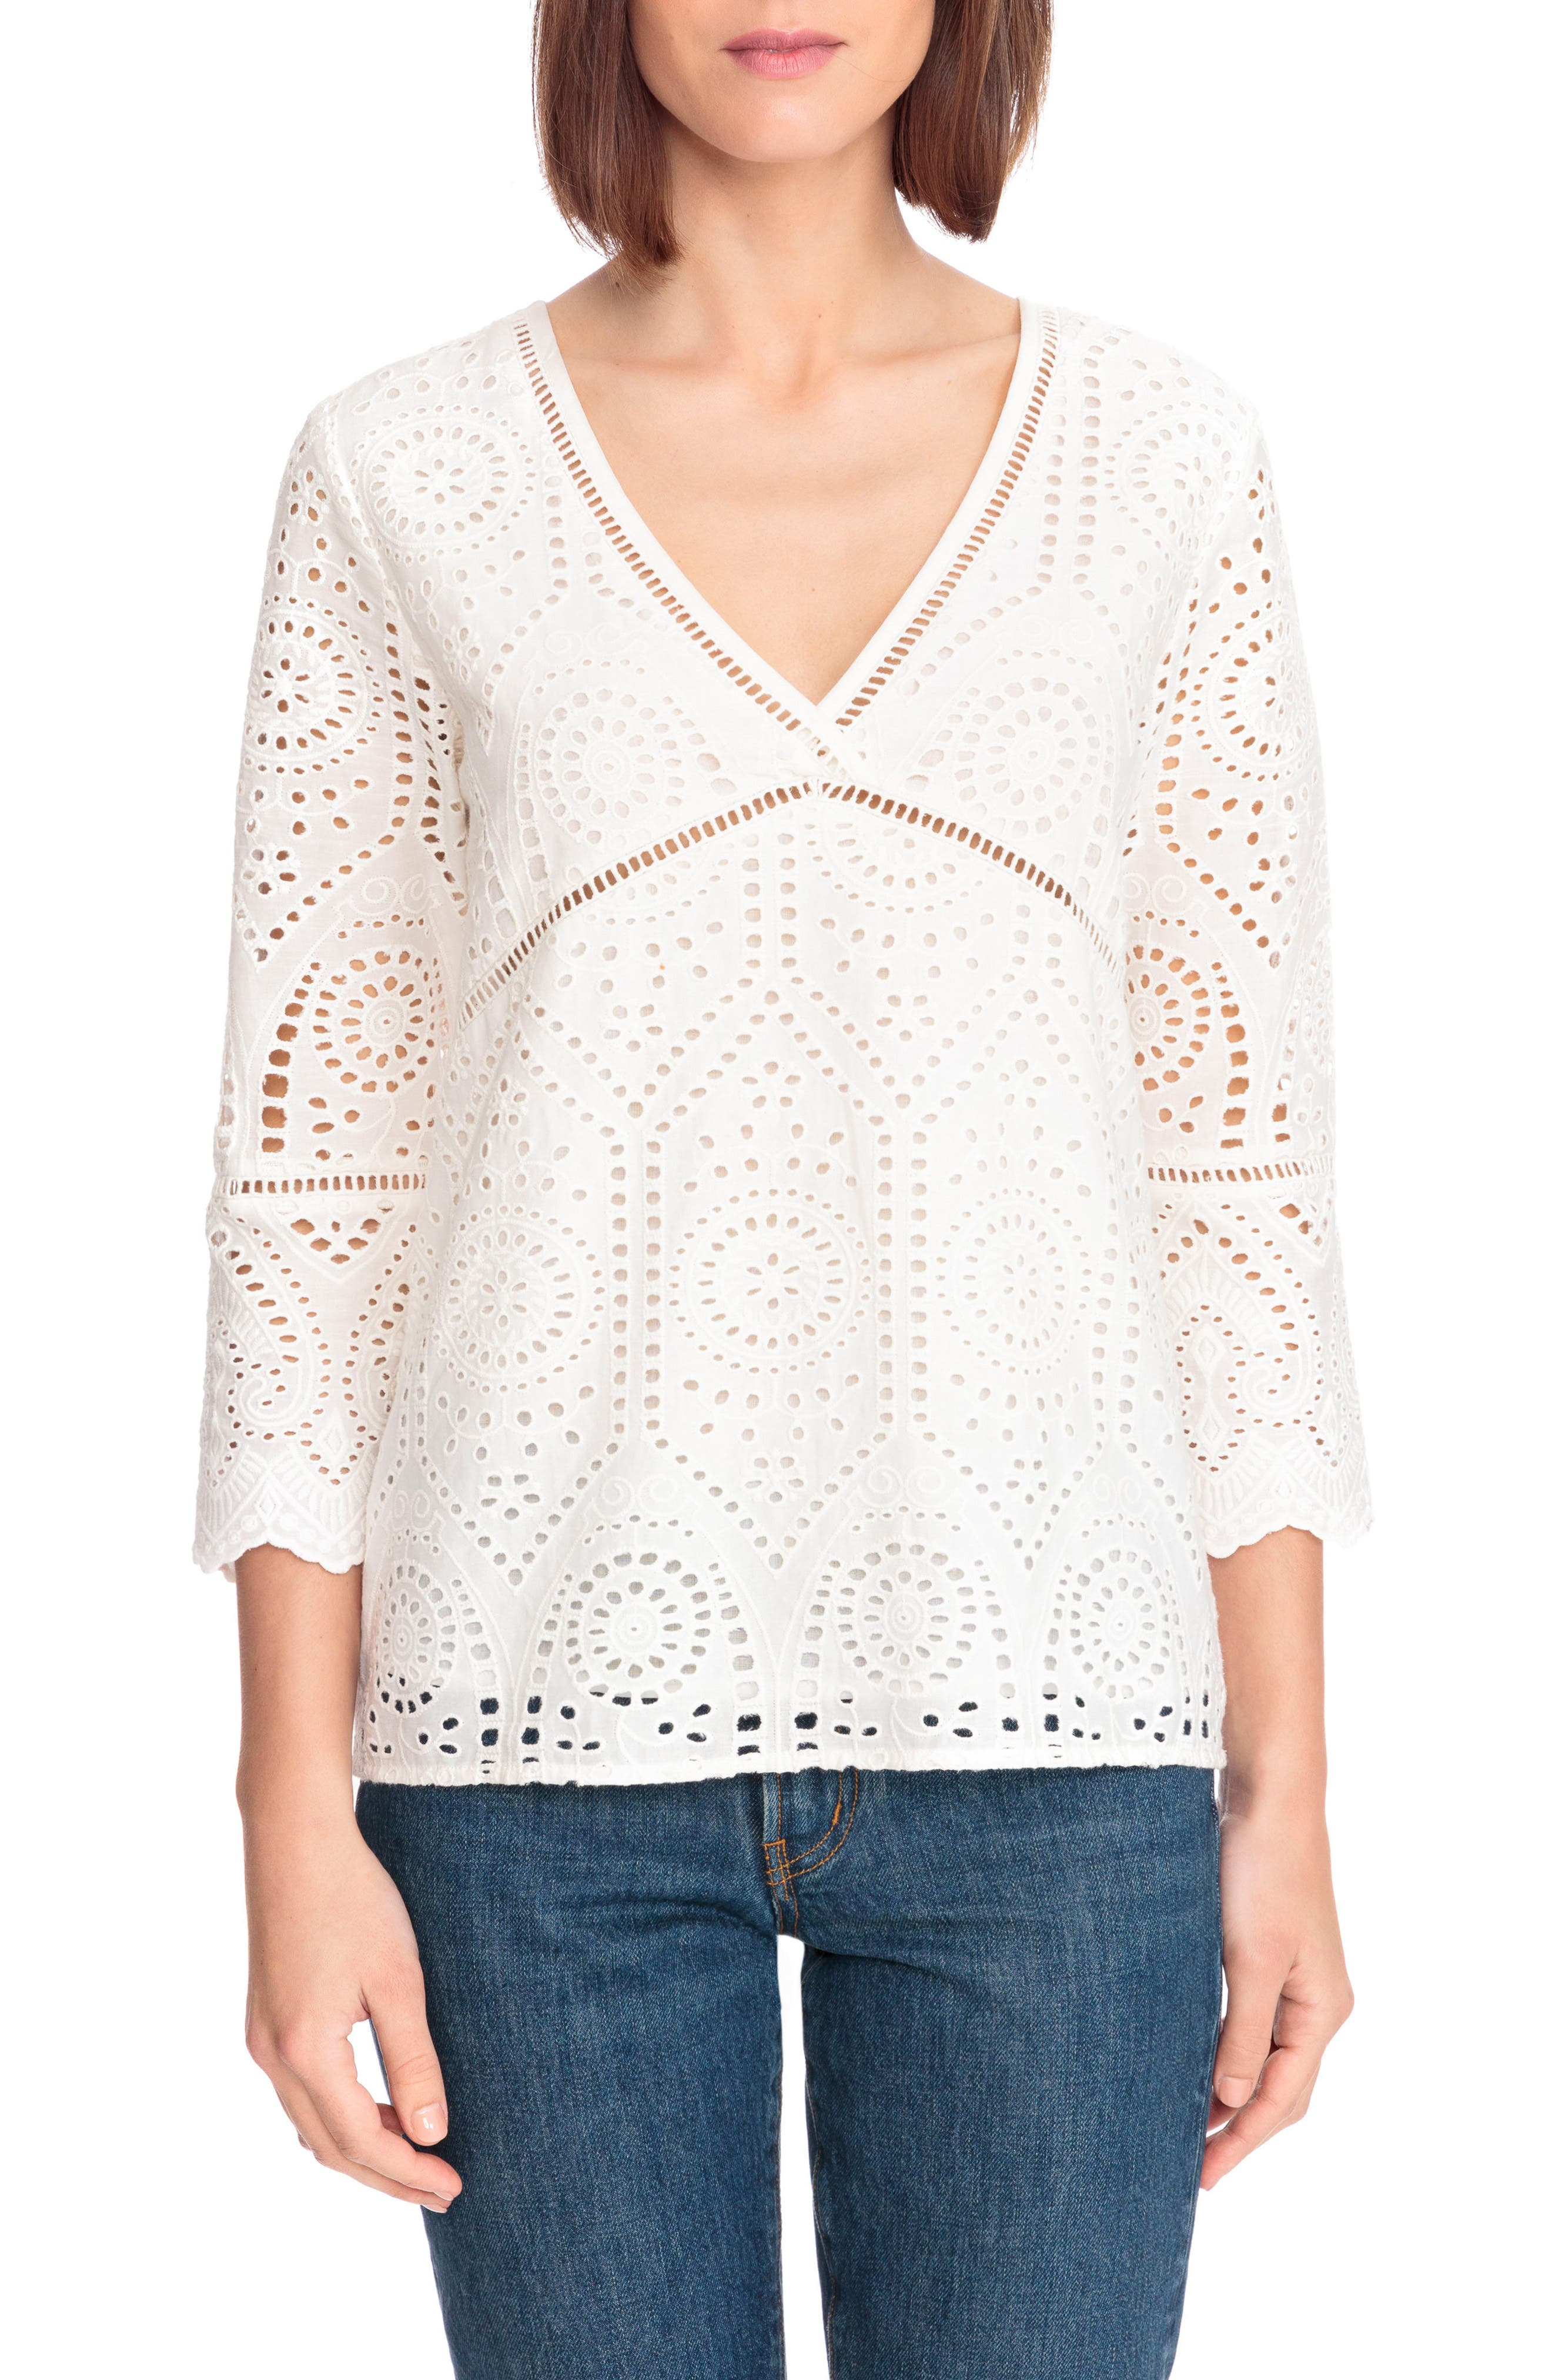 Andrea Cutwork Blouse,                             Main thumbnail 1, color,                             100